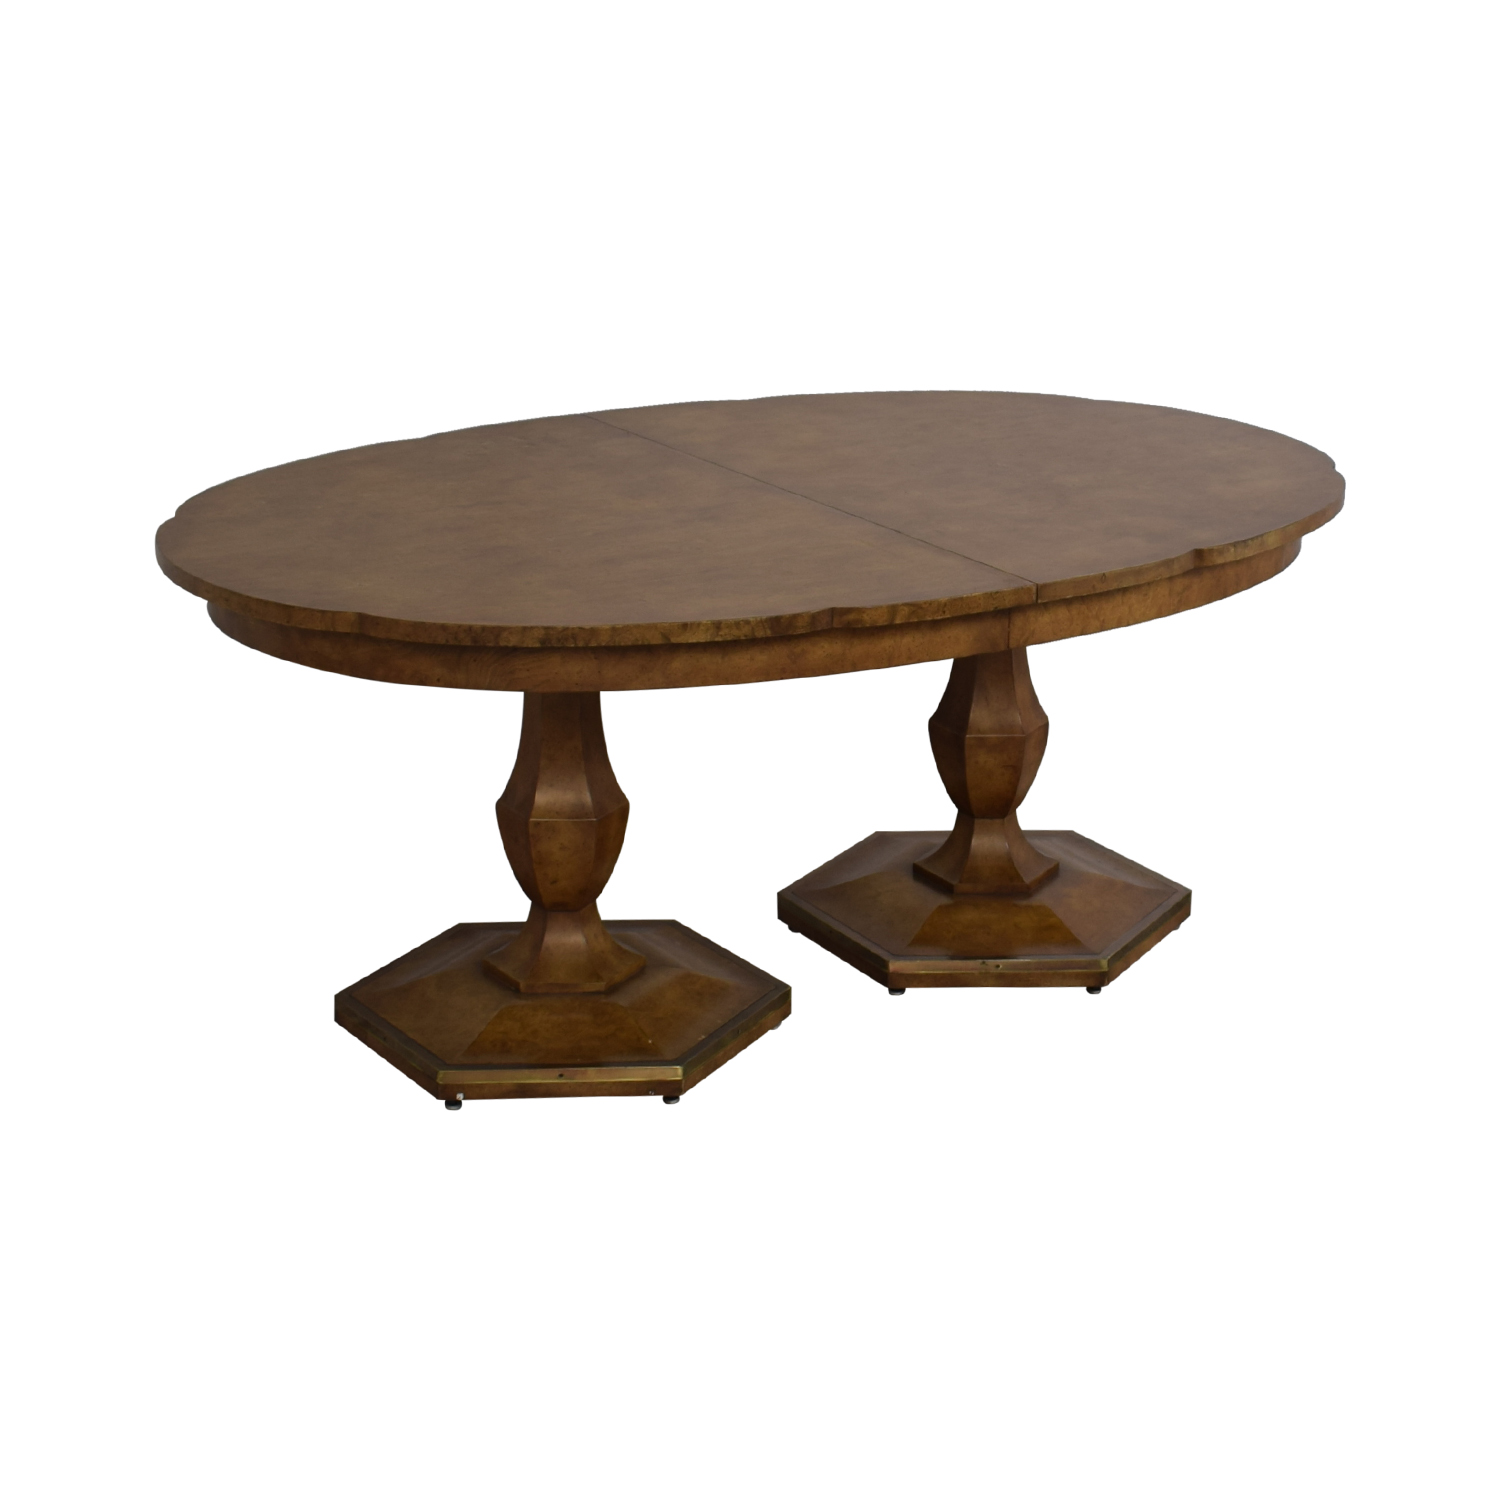 Mastercraft Furniture Mastercraft Furniture Scalloped Edge Dining Table coupon